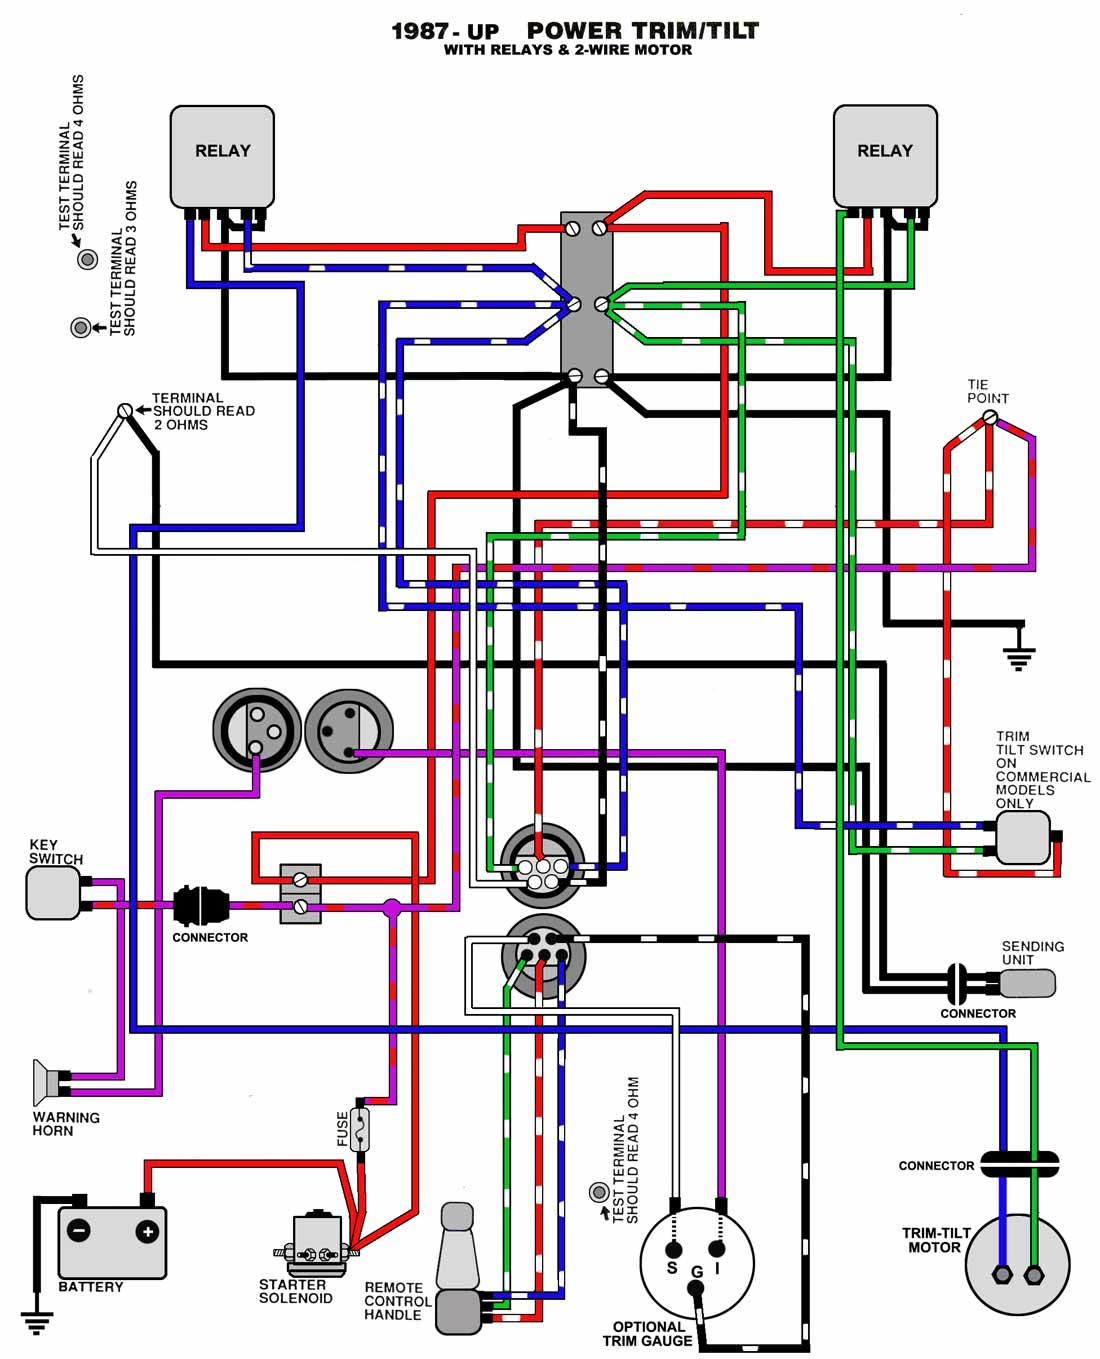 TnT_87_UP mastertech marine evinrude johnson outboard wiring diagrams tilt trim wiring diagram at eliteediting.co